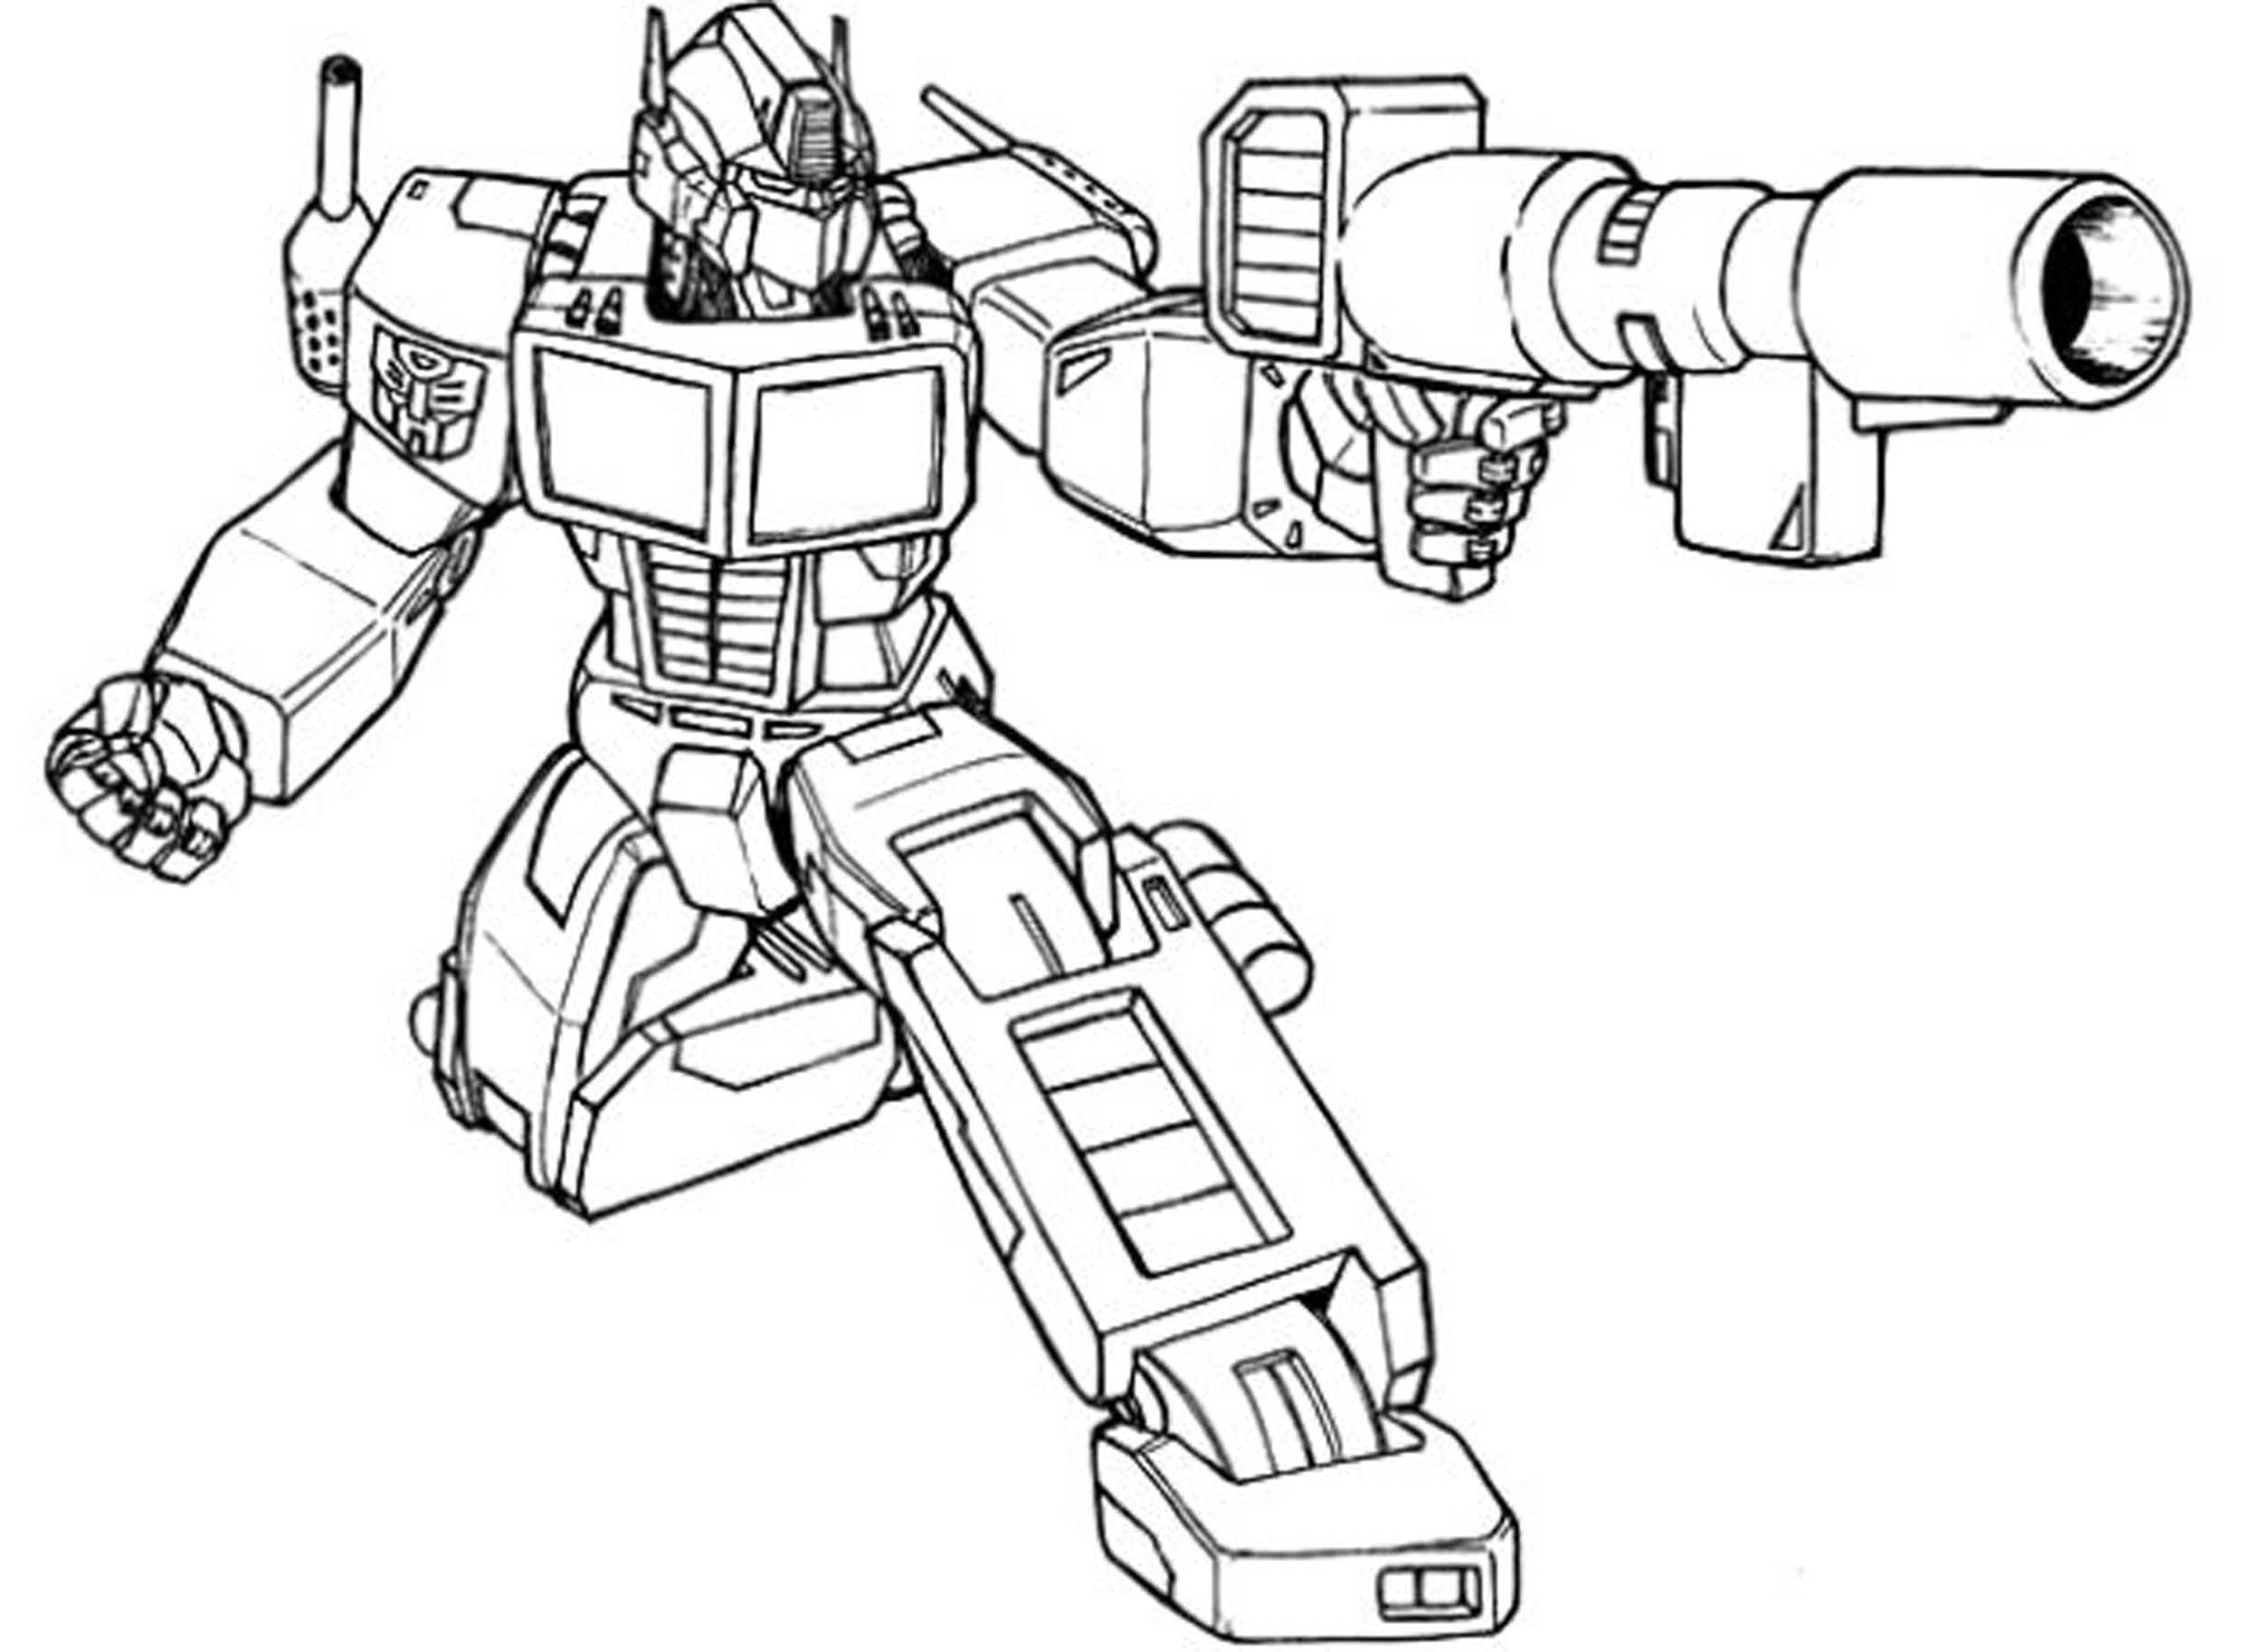 bumblebee transformer coloring pictures bumblebee tranformers car coloring pages printable transformer bumblebee pictures coloring